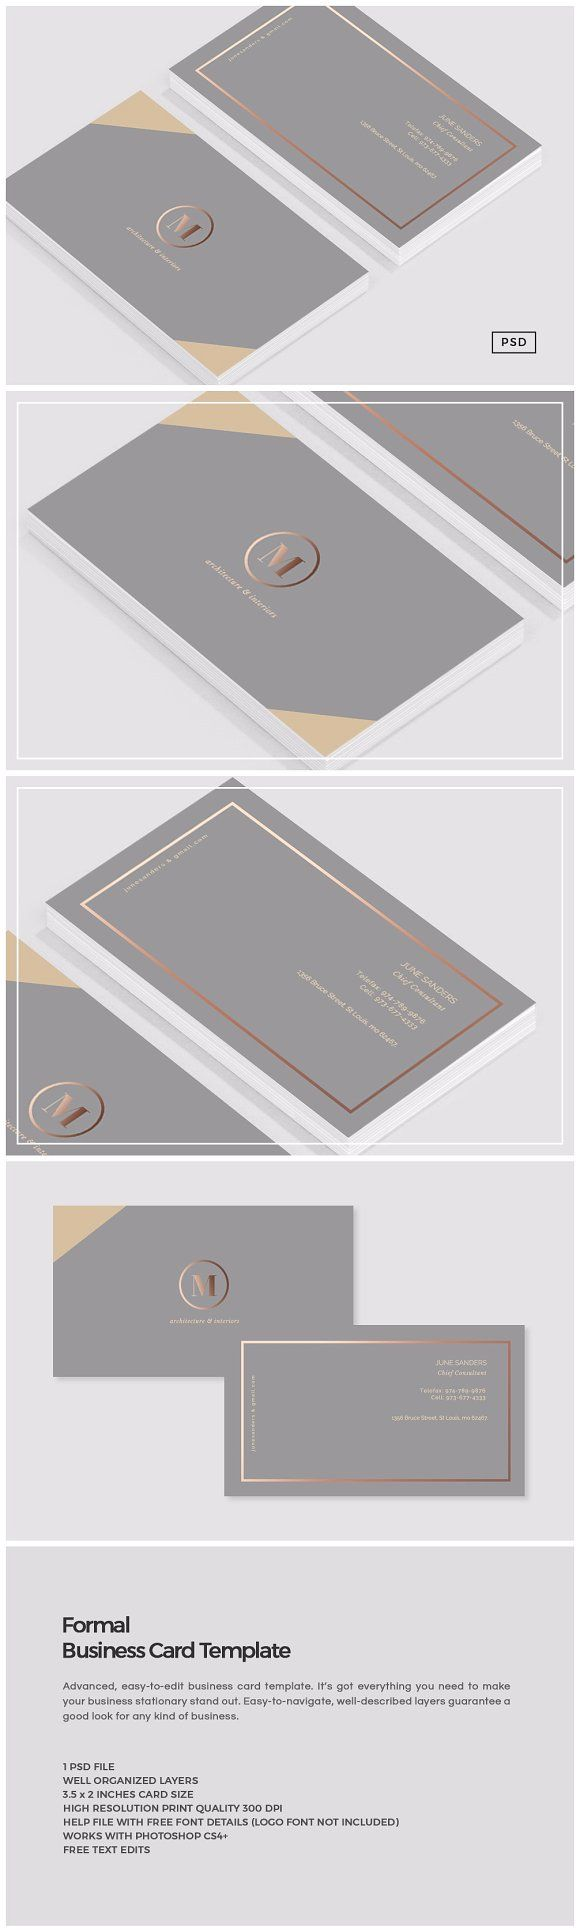 Formal Business Card Template Formal Business Card Business Cards Cool Business Cards